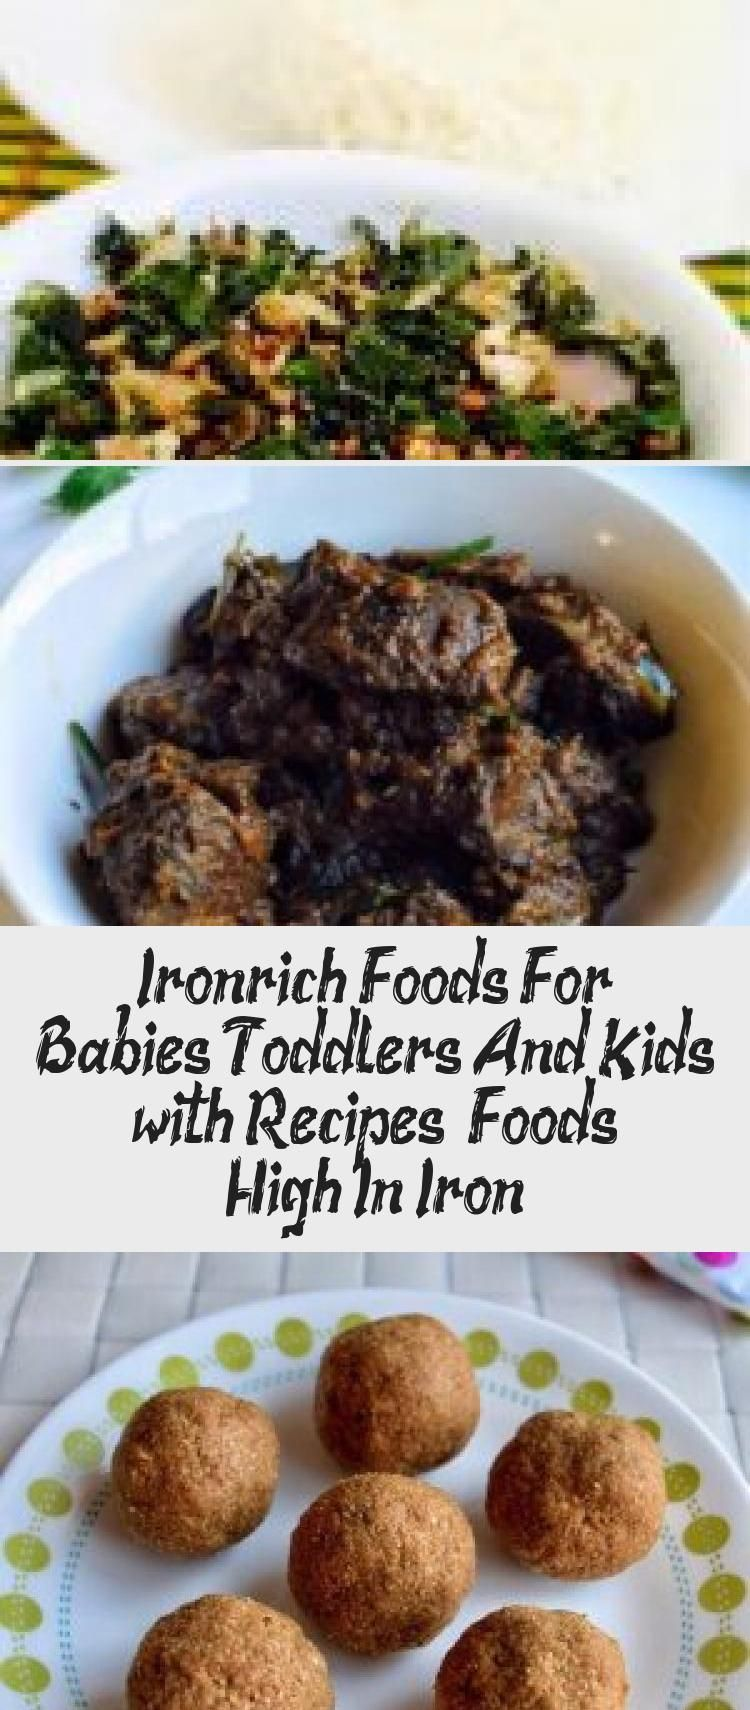 Ironrich Foods For Babies, Toddlers And Kids (with